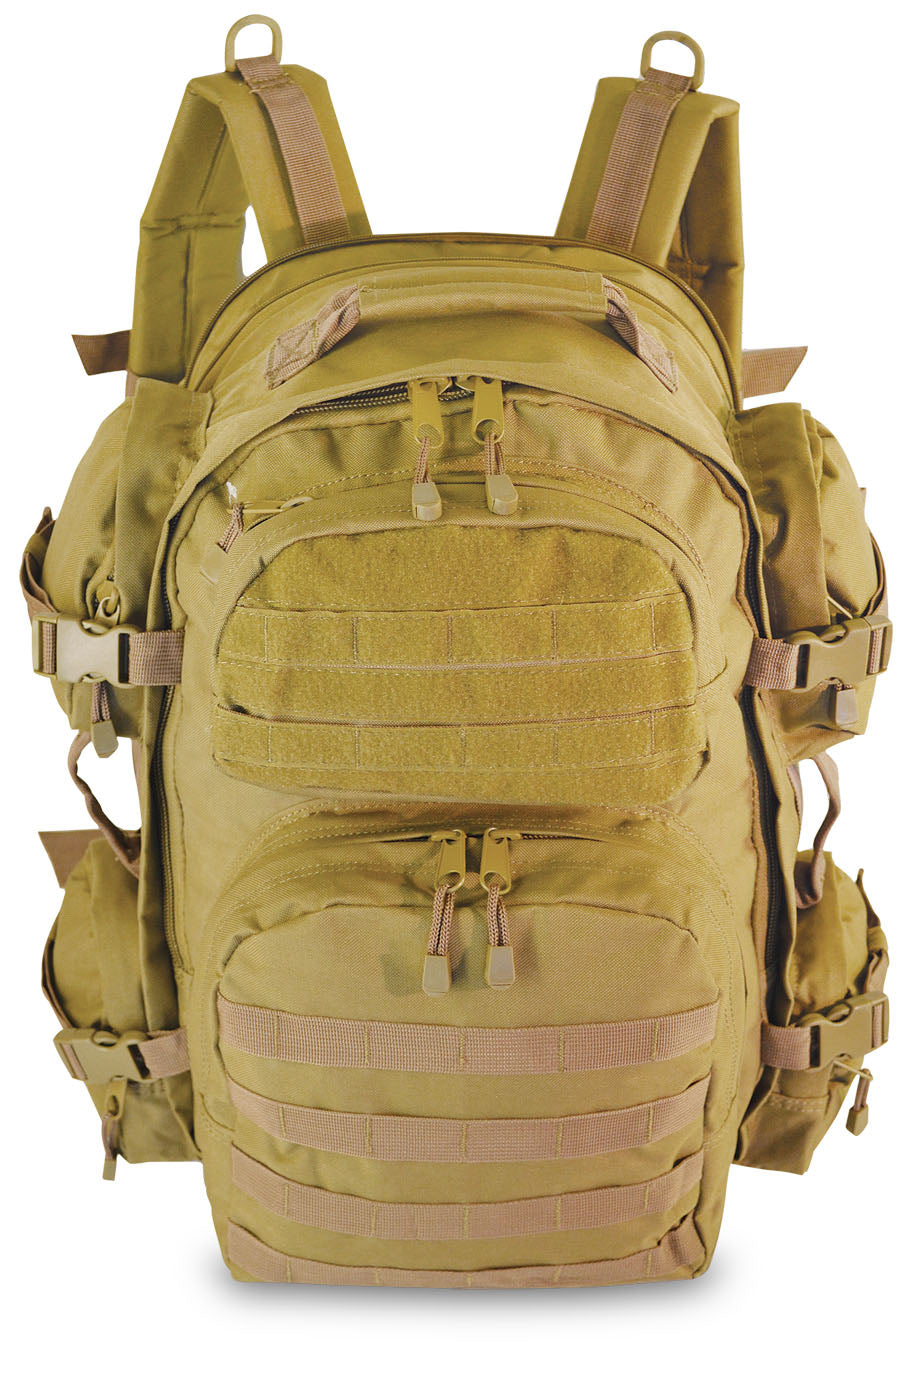 Explorer U.S. Military Level 3 Tactical Backpack